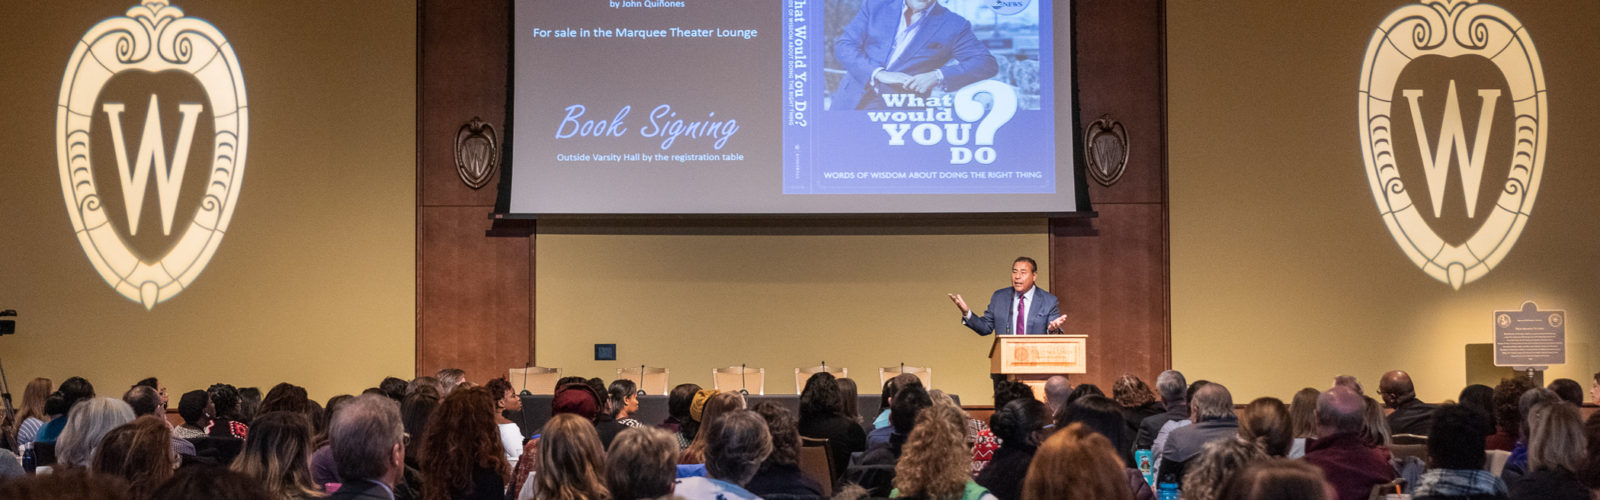 "John Quiñones gestures while speaking at a podium on a stage in front of a large, seated audience. A projection screen behind him shows a book cover with the title ""What Would You Do?"""